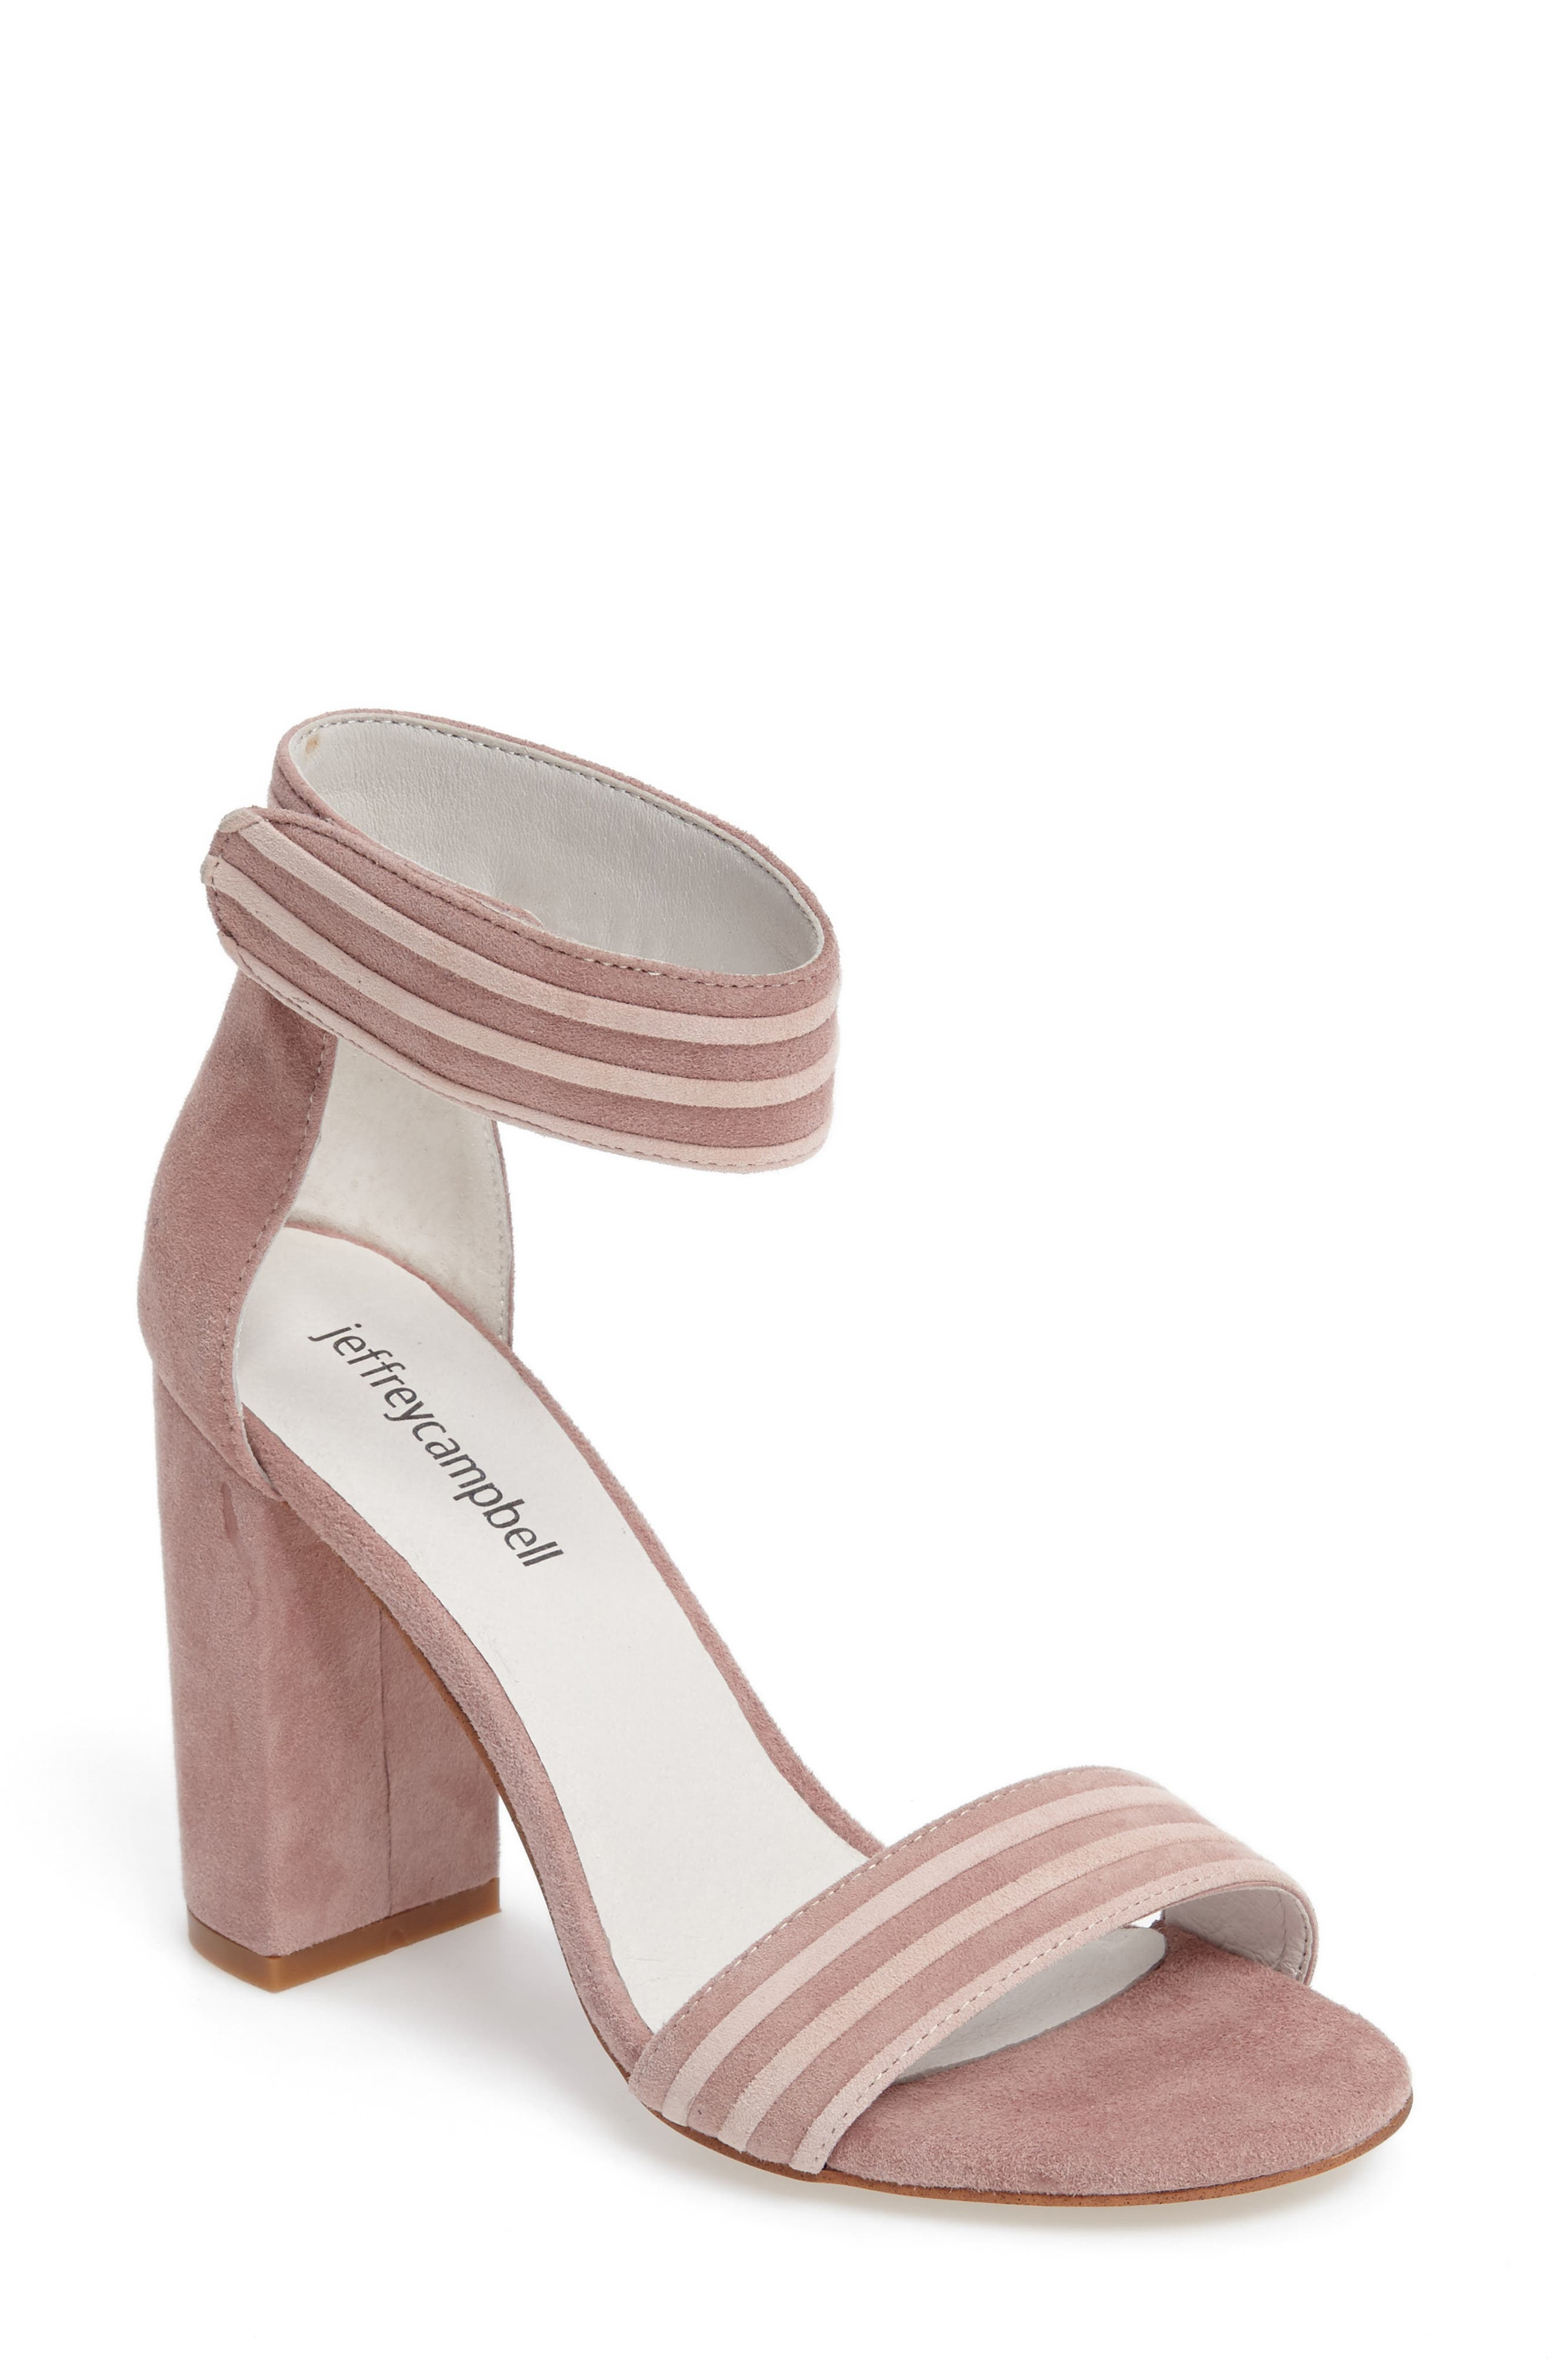 Lindsay 2 Ankle Strap Sandal,                             Main thumbnail 1, color,                             Pink Suede Combo